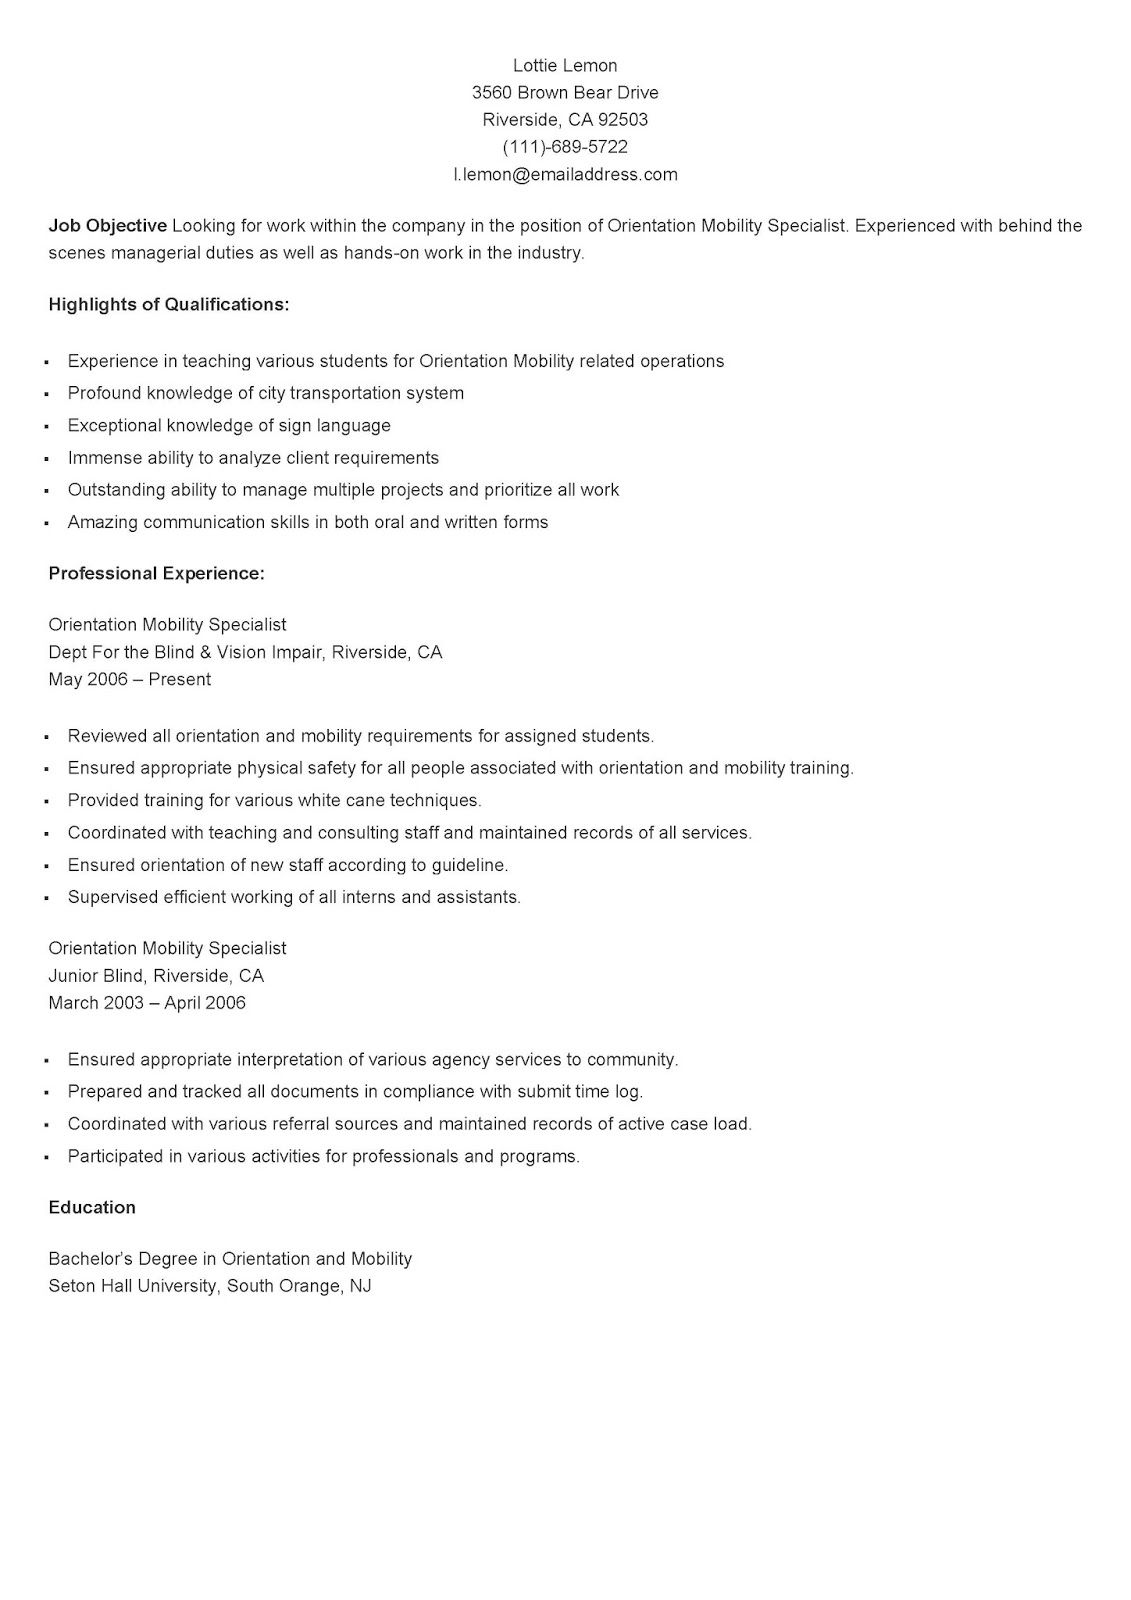 Sample Orientation Mobility Specialist Resume Specialist Resume Oriental